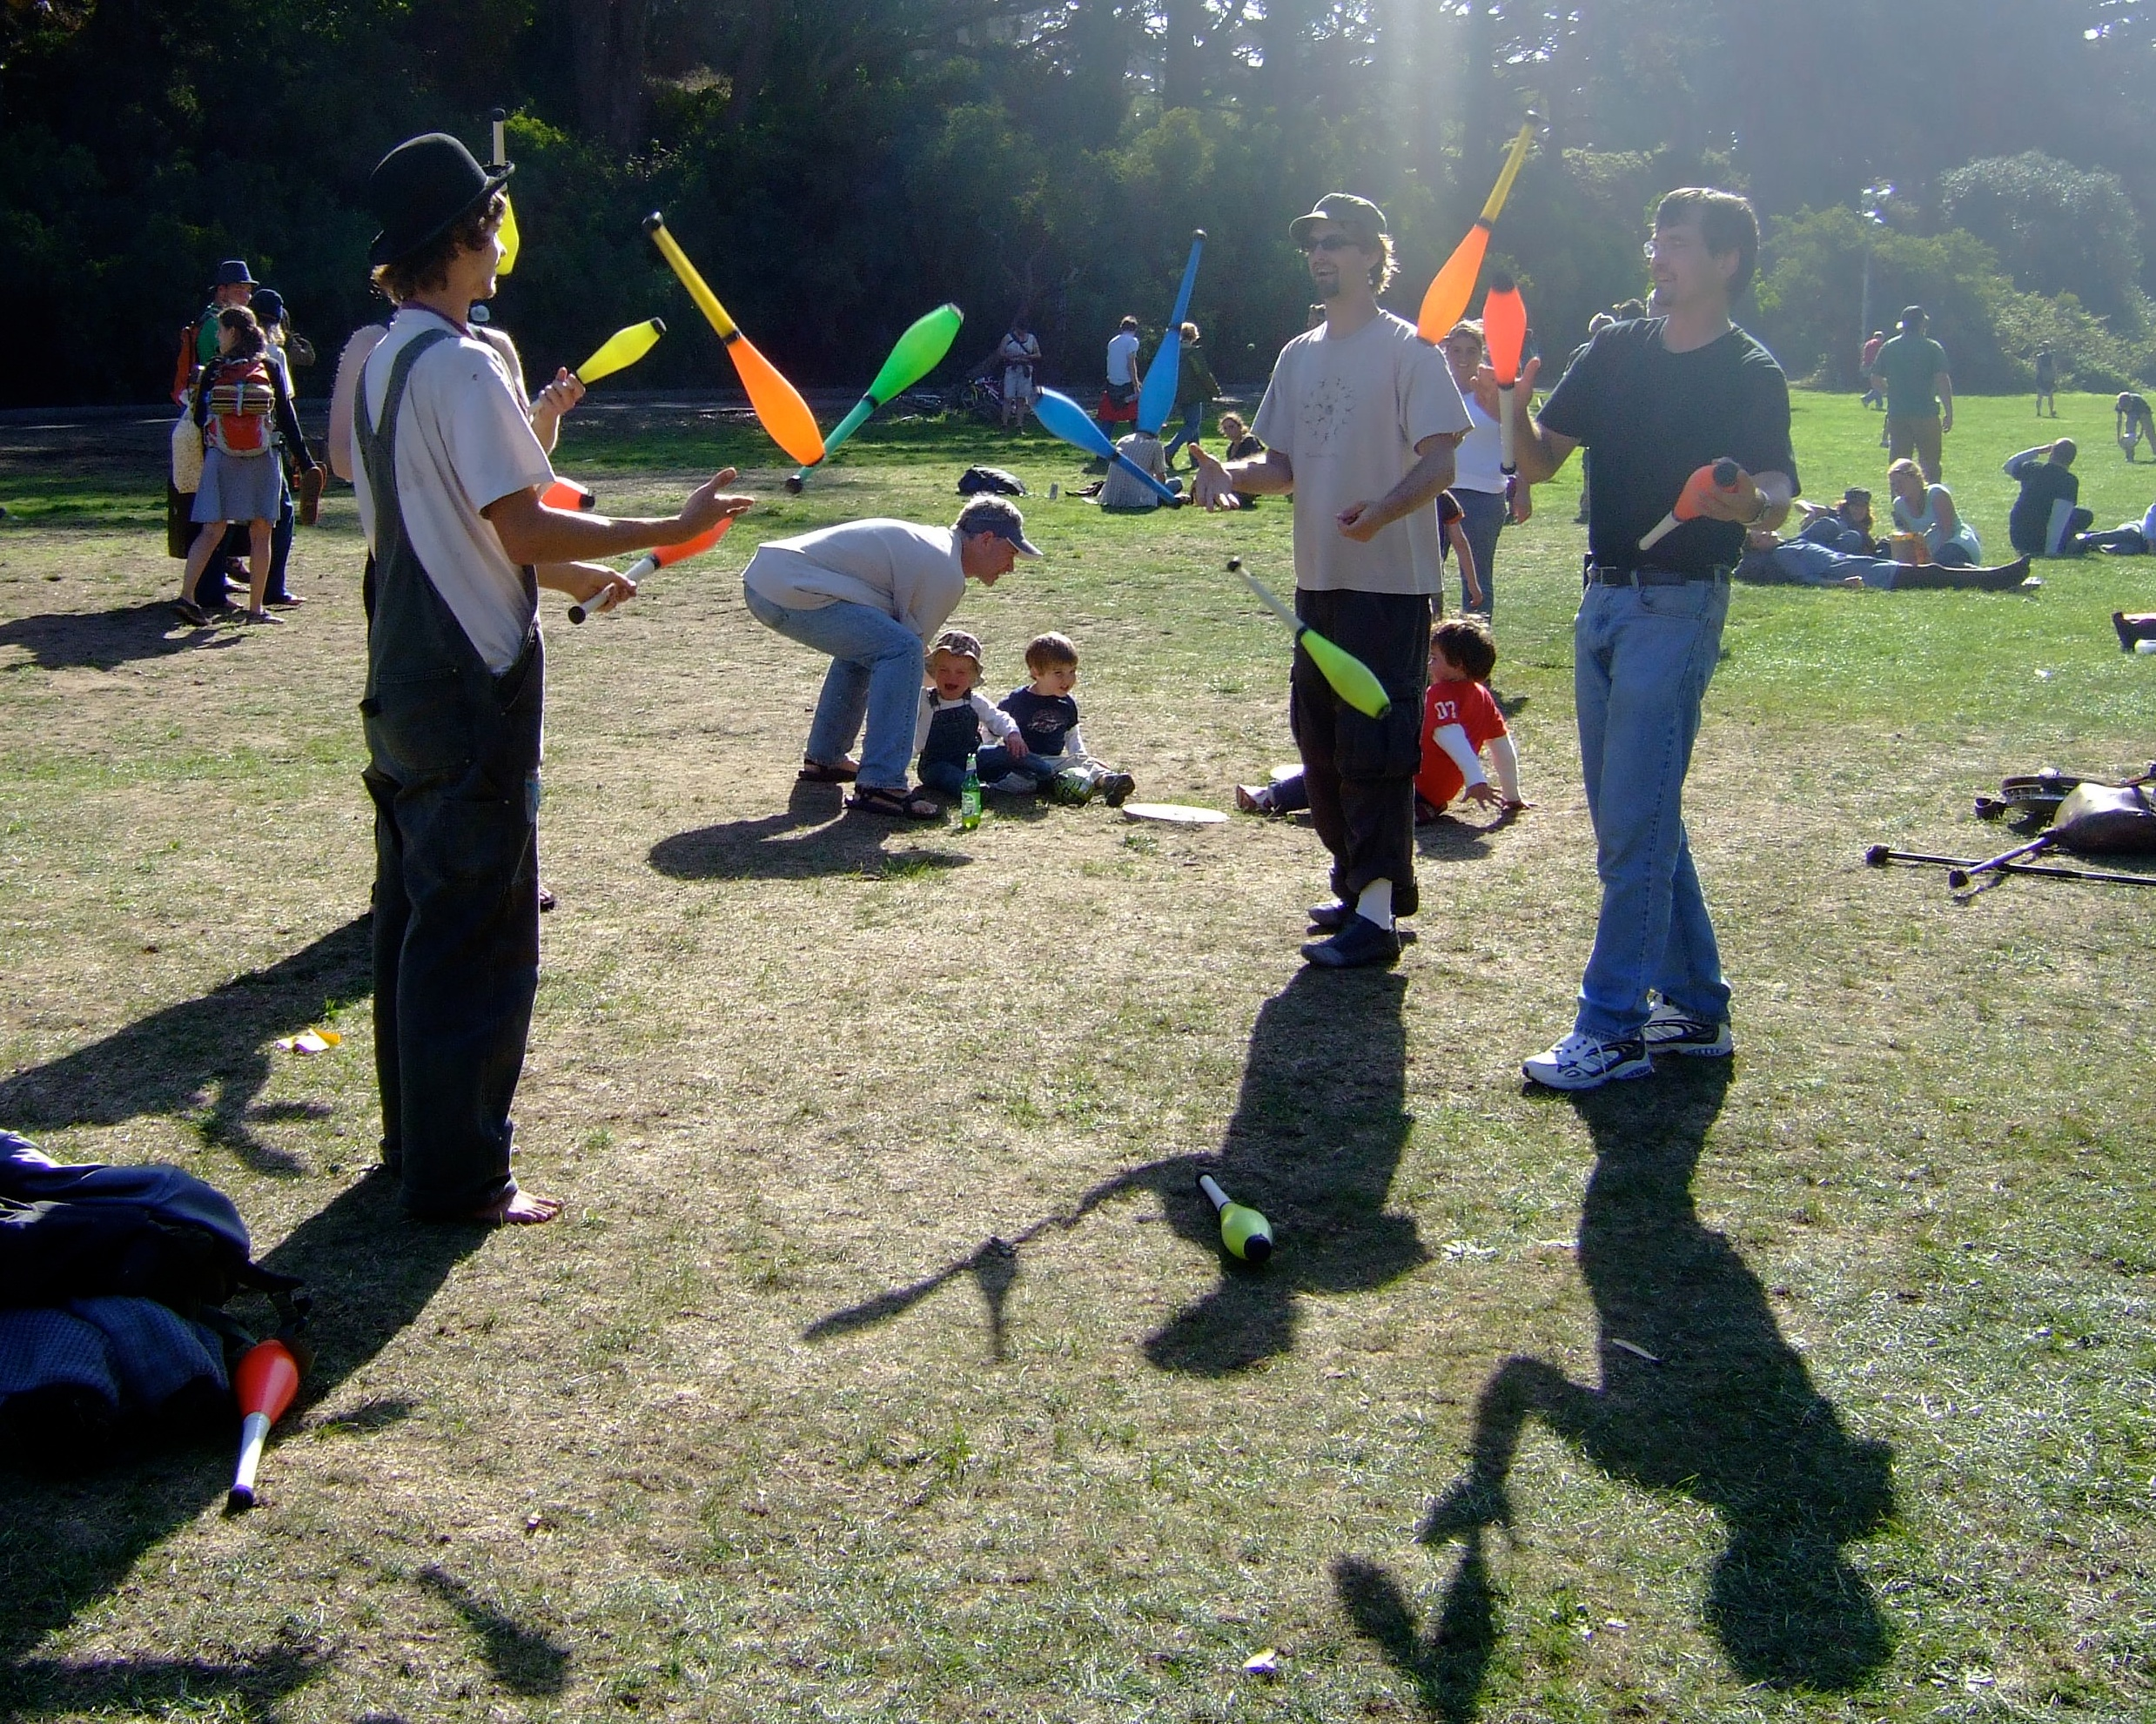 juggling at hardly strickly author lucke charlie